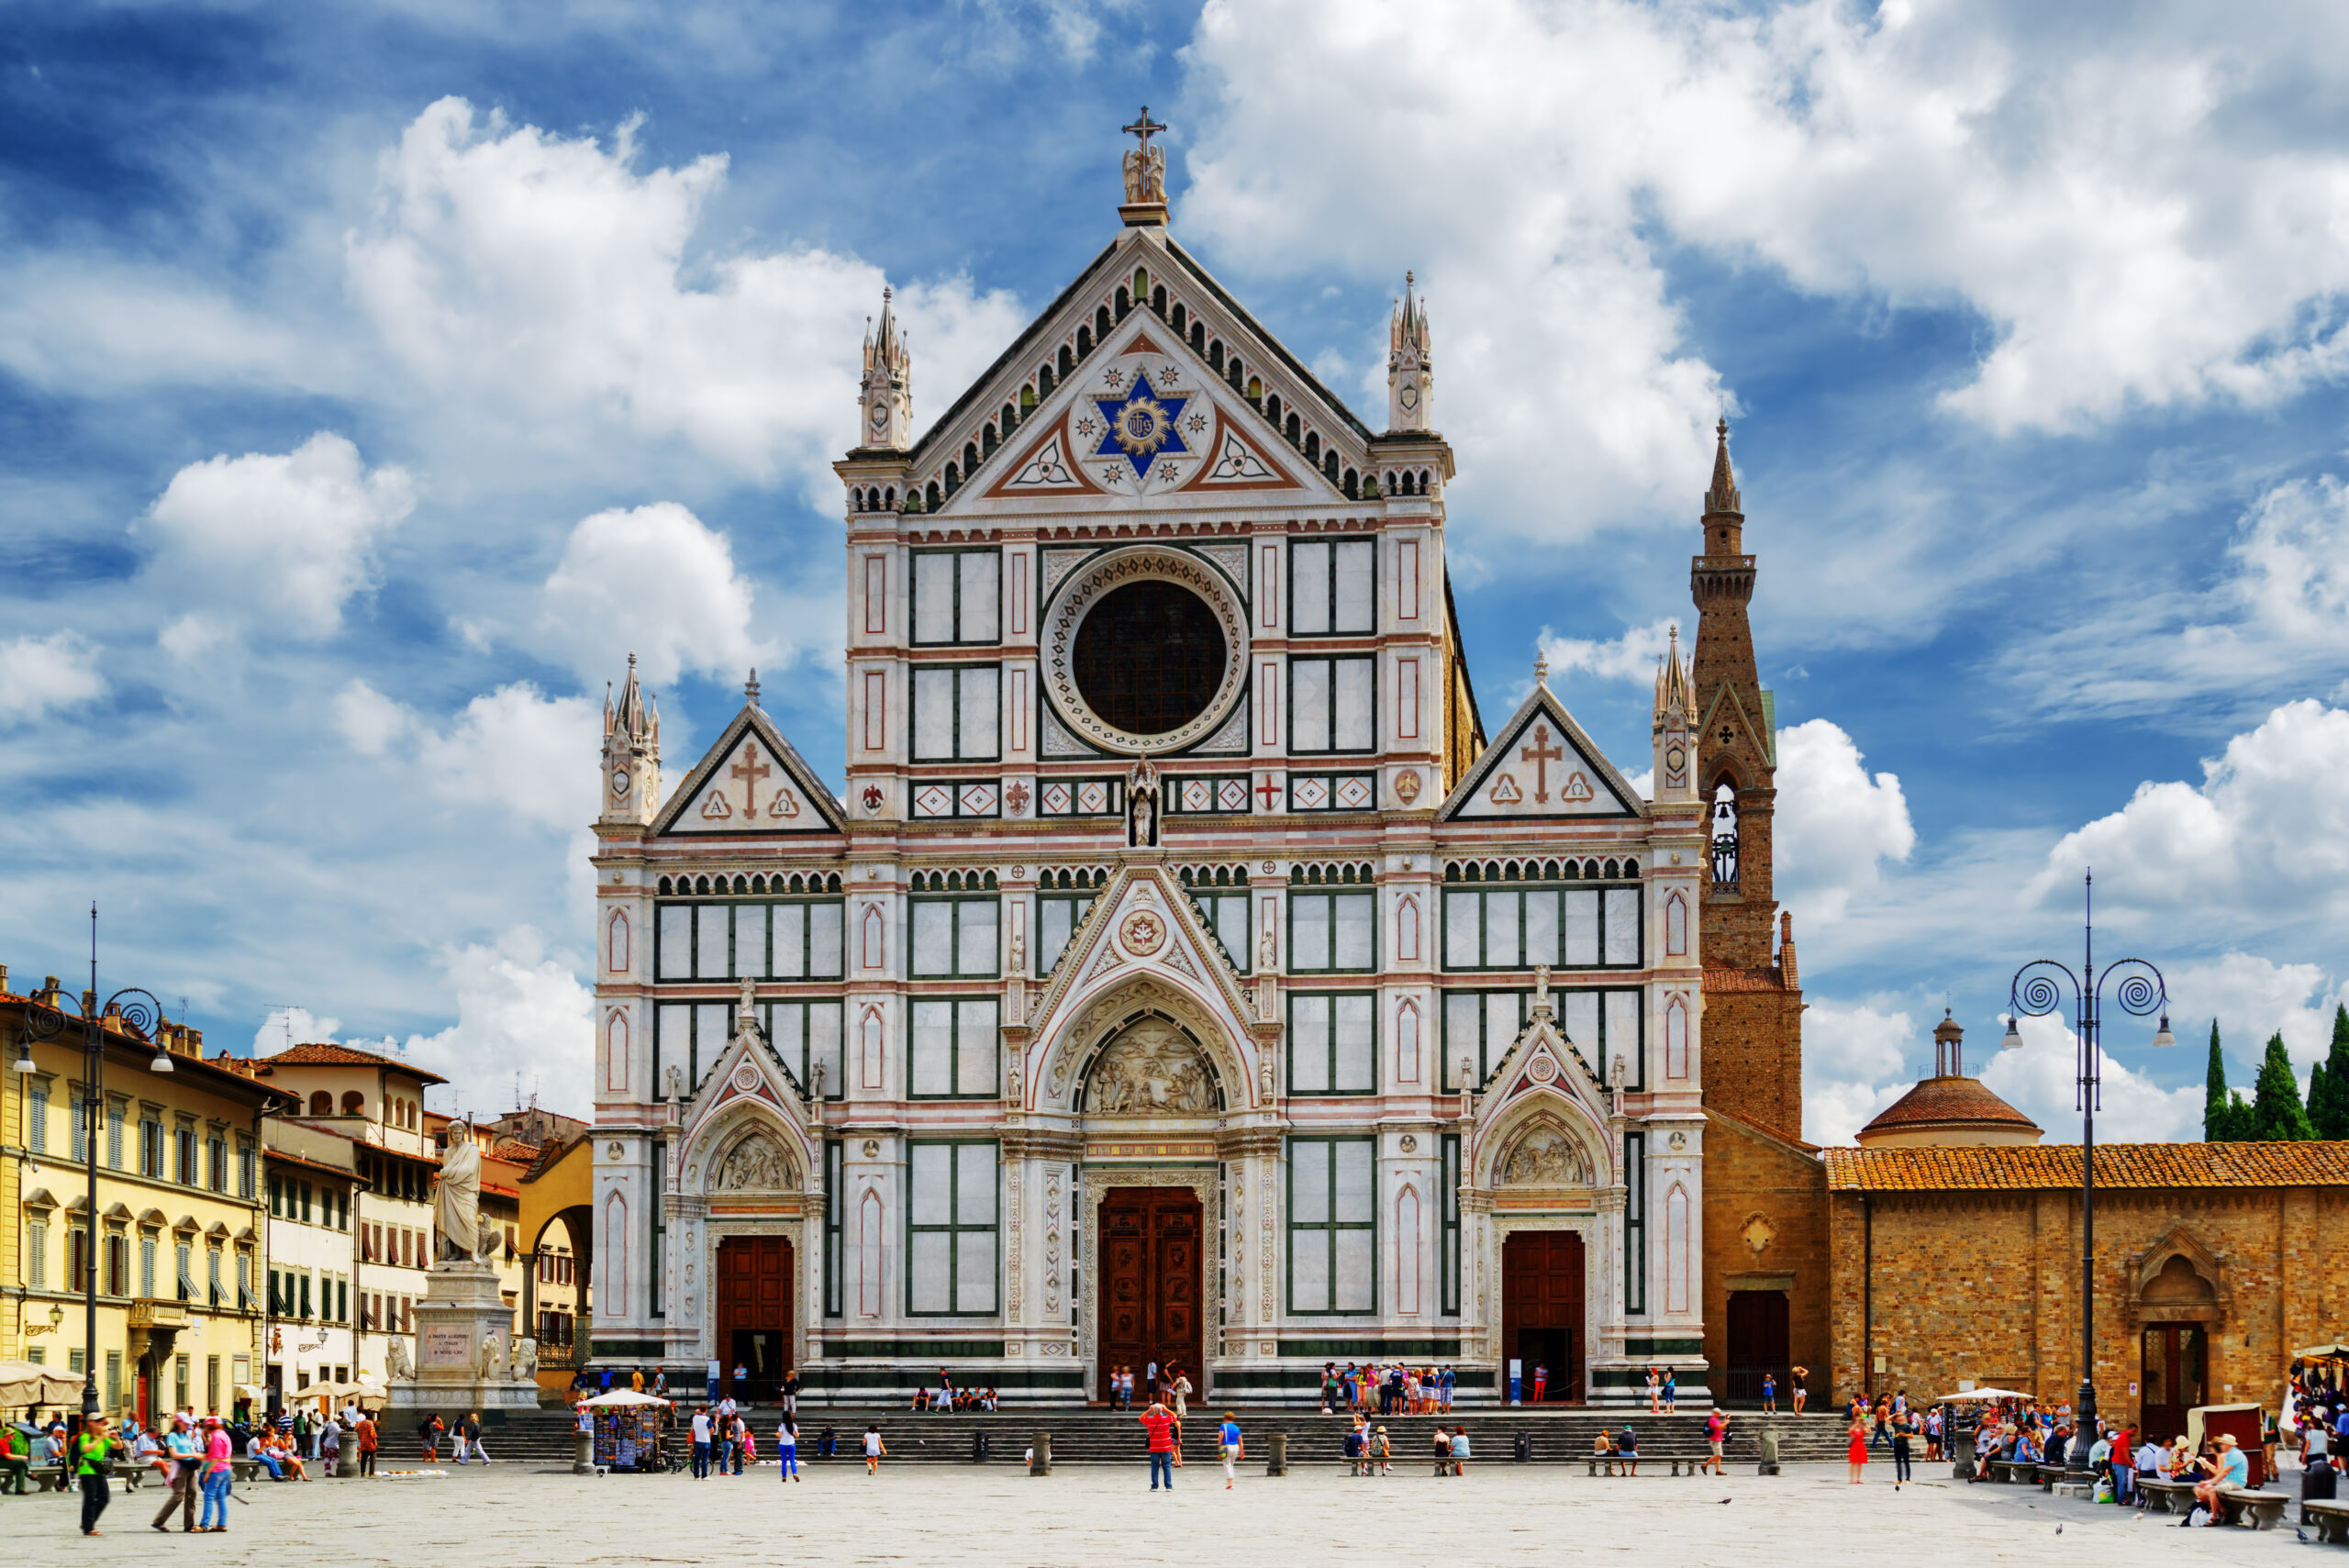 The Basilica di Santa Croce (Basilica of the Holy Cross) on square of the same name in Florence, Tuscany, Italy.